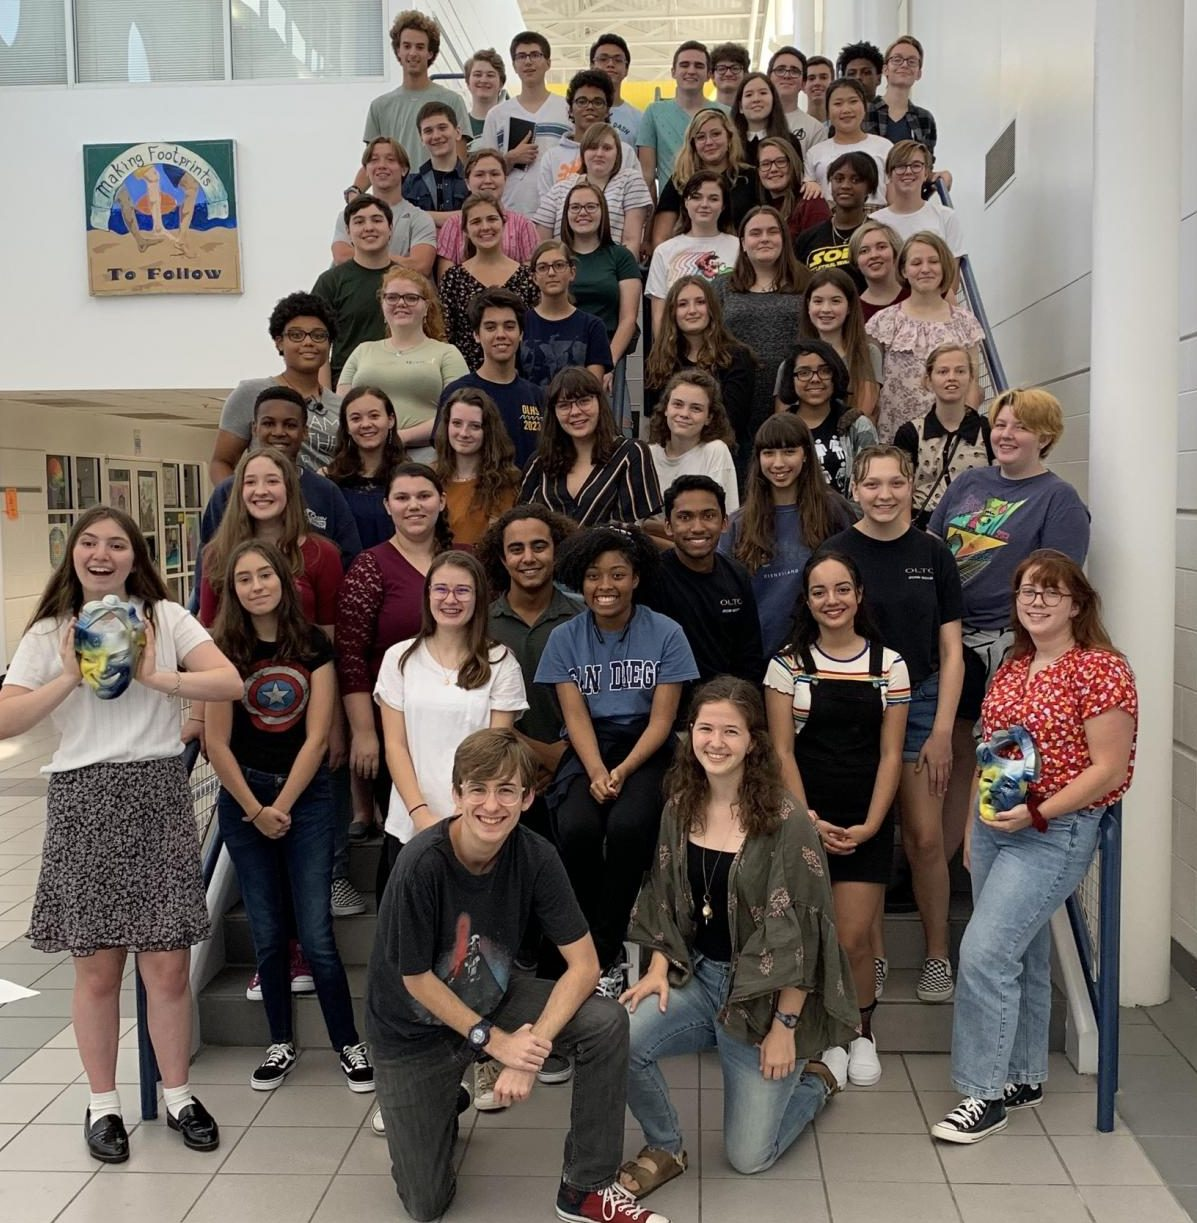 Taming of the Shrew workshop attendees pose on staircase on Oct. 23, 2019.